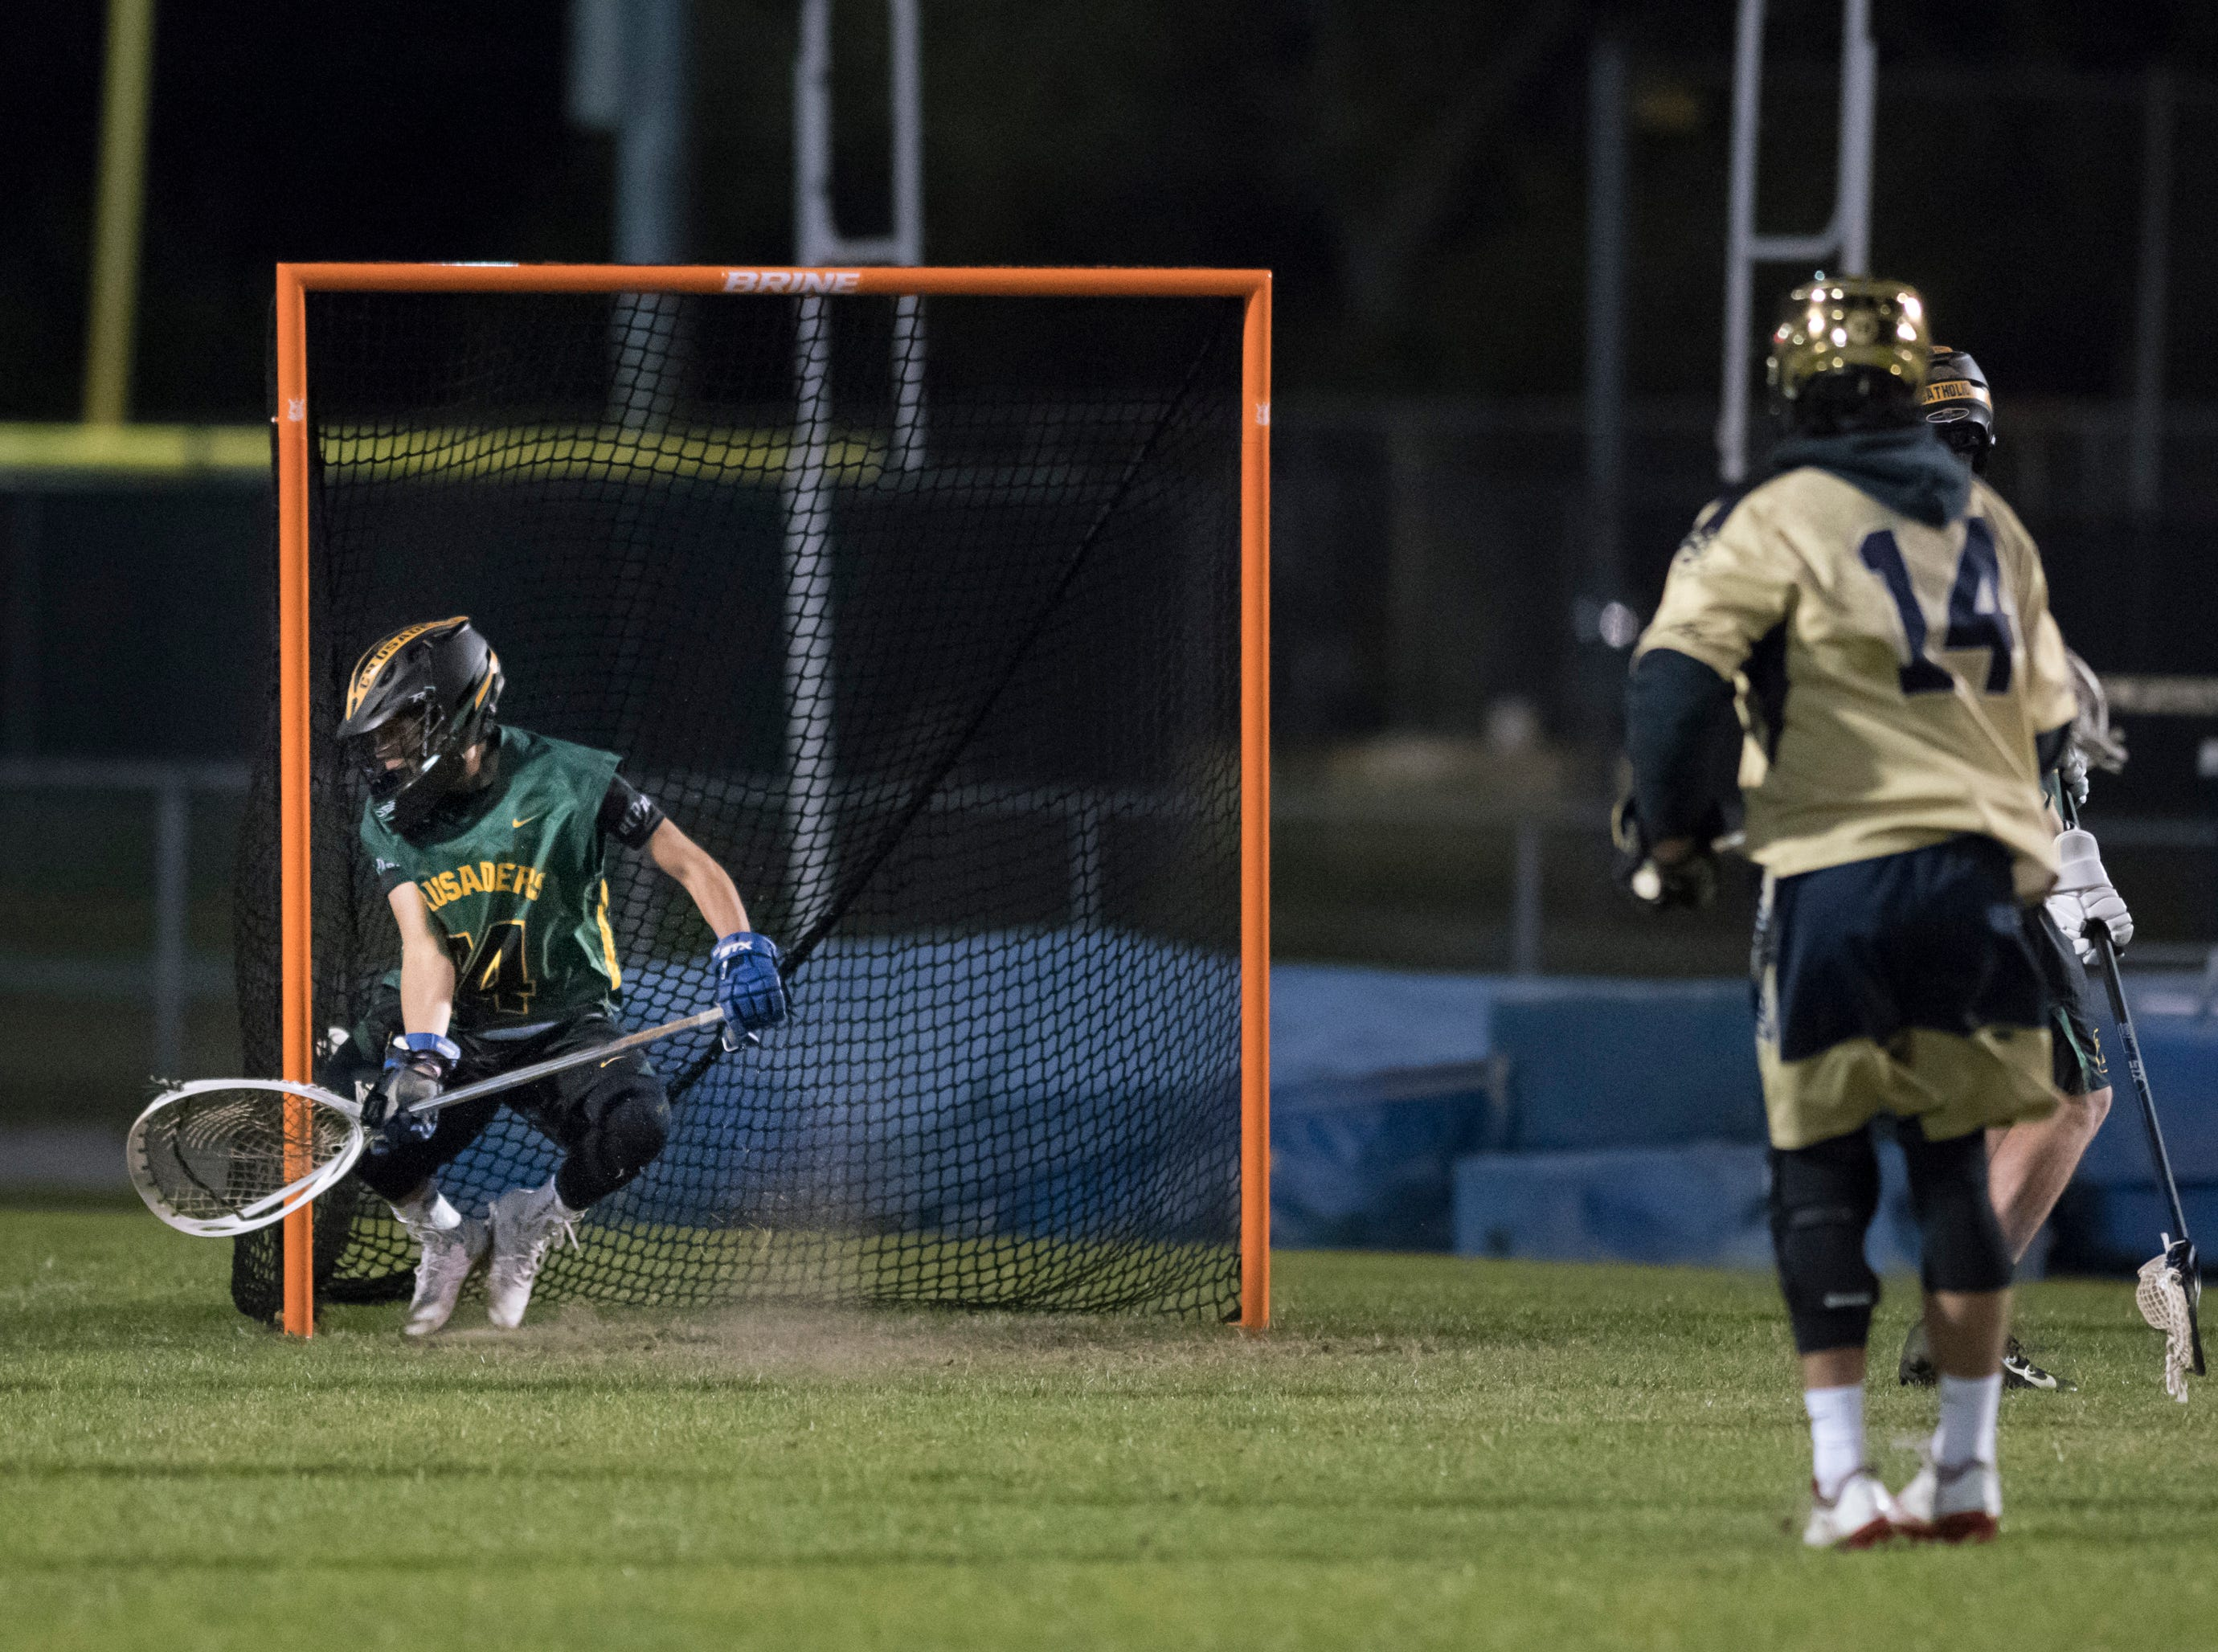 TJ Caldwell (14) watches his shot get past goalie Phillip Garcia (14) as the Dolphins cut the lead to 4-1 during the Catholic vs. Gulf Breeze boys lacrosse game at Gulf Breeze High School on Wednesday, March 6, 2019.